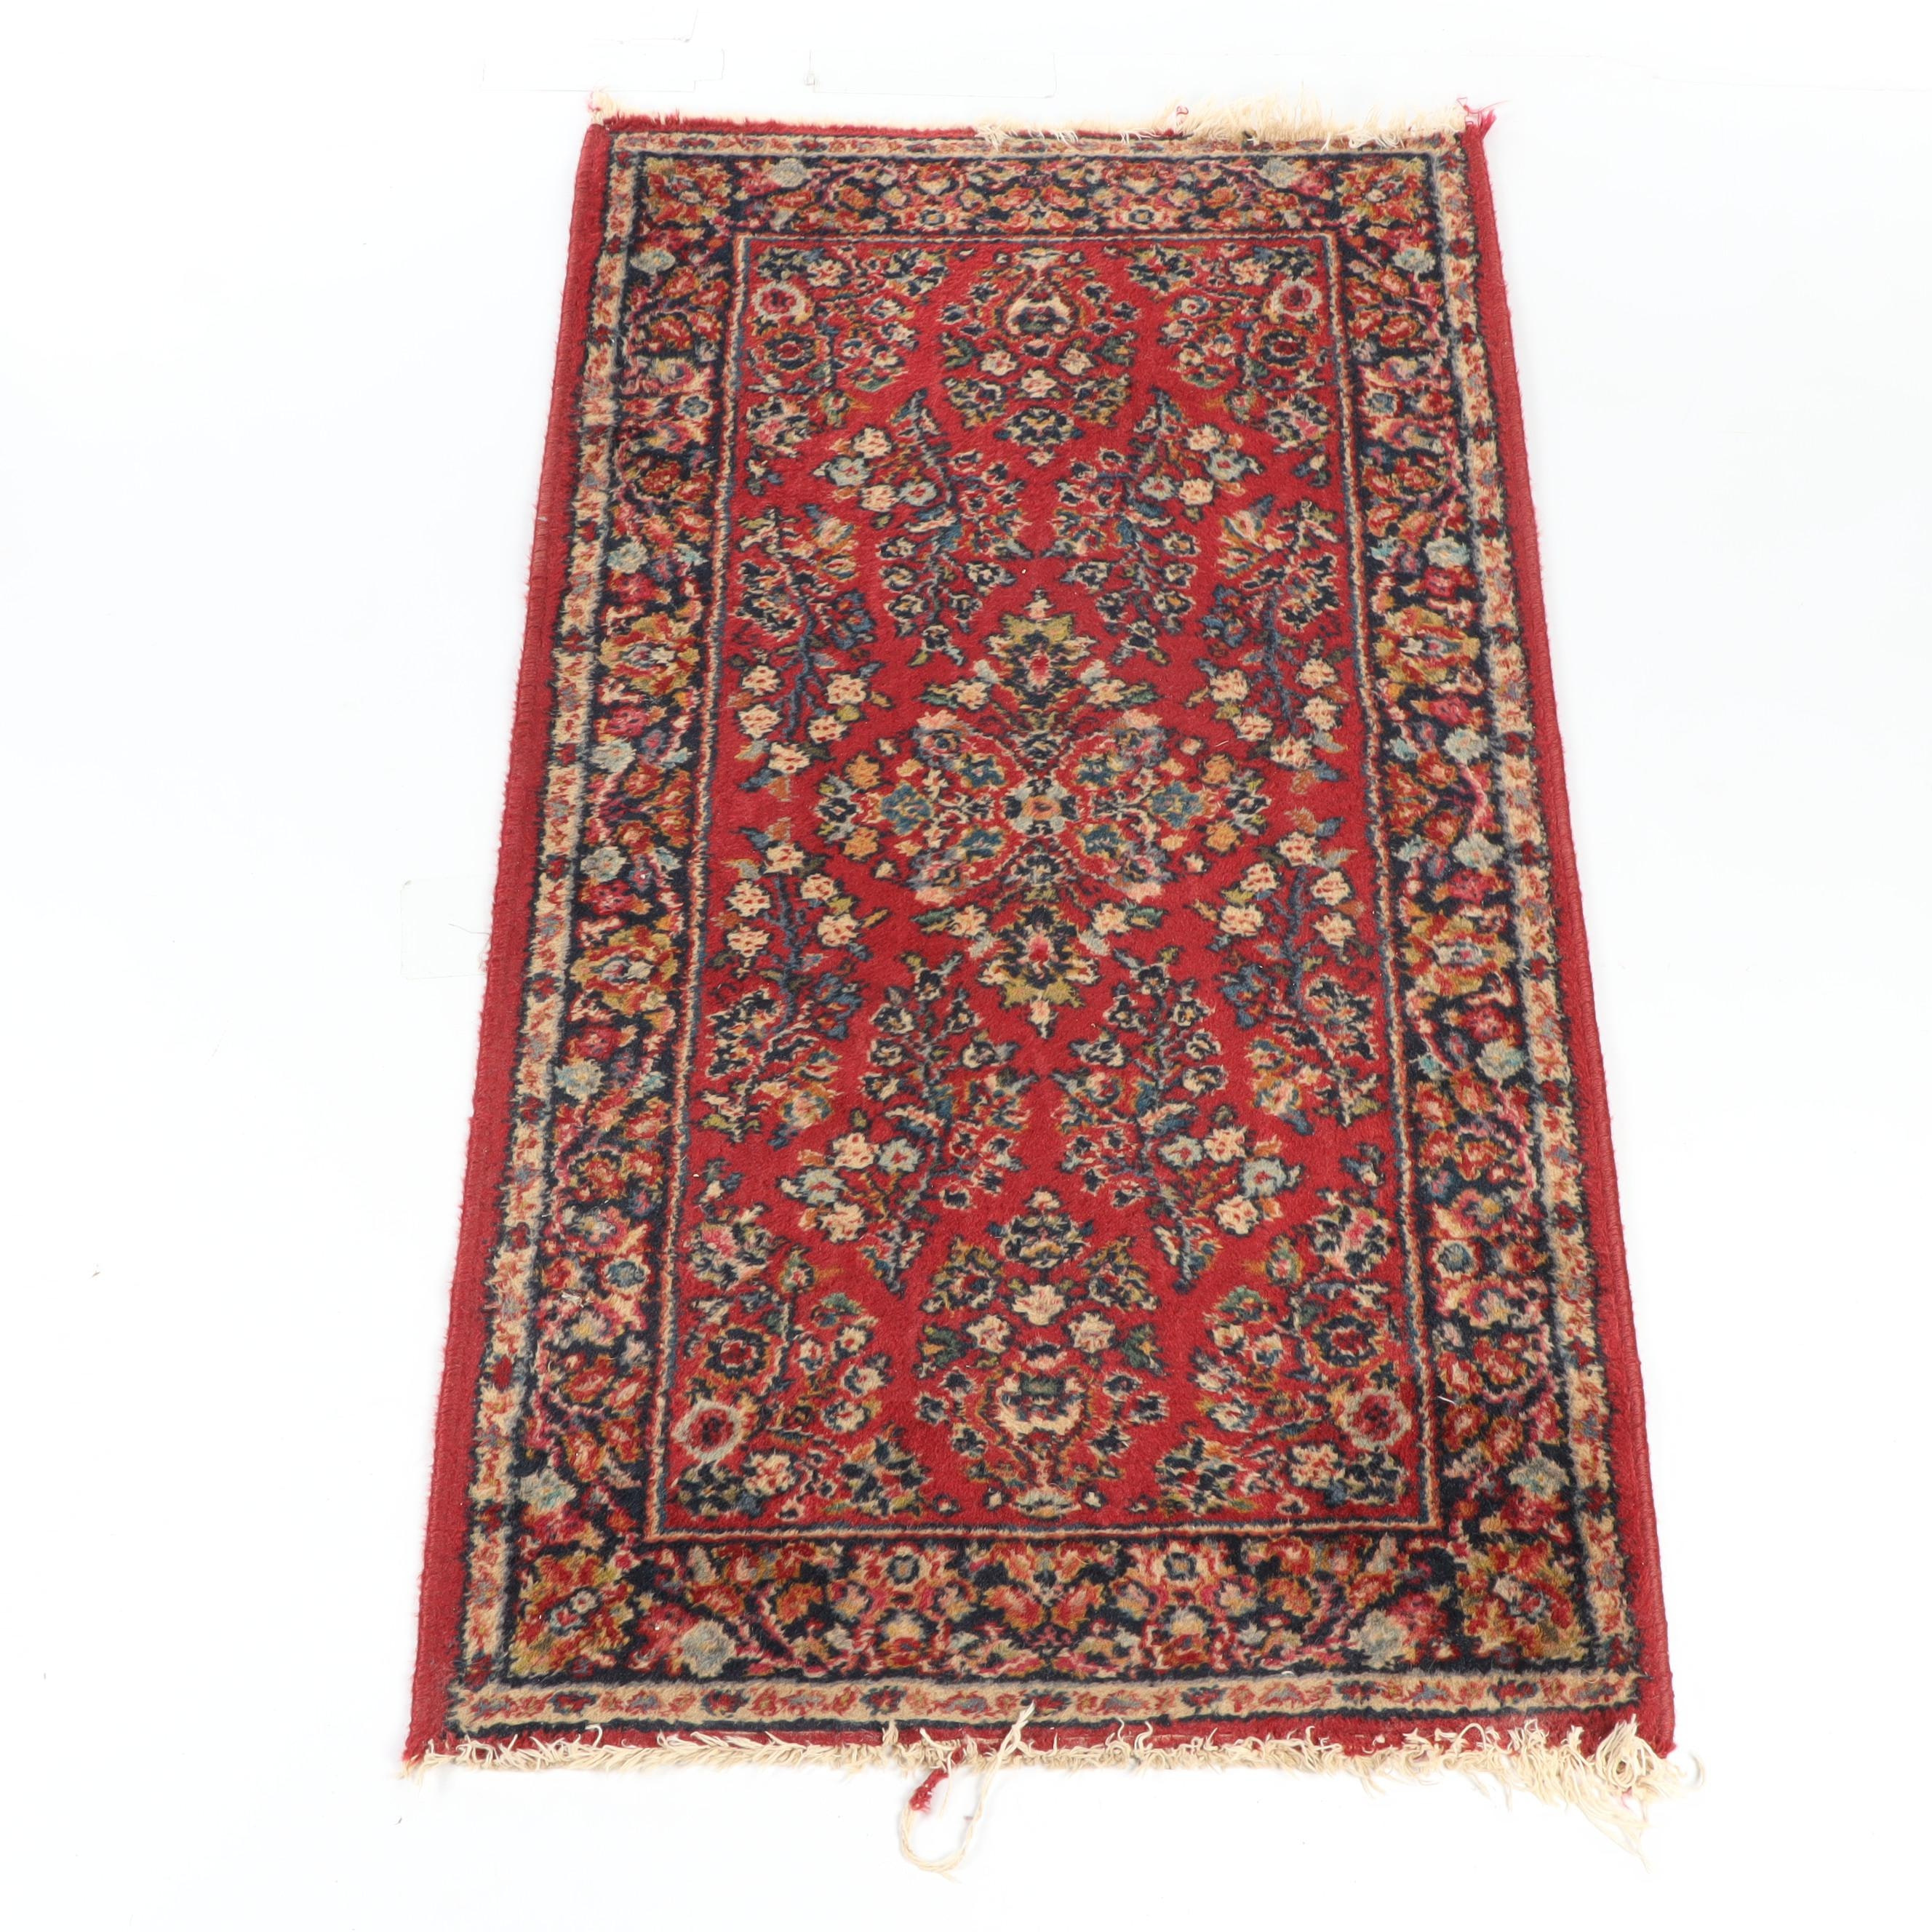 Power-Loomed Karastan Wool Rug